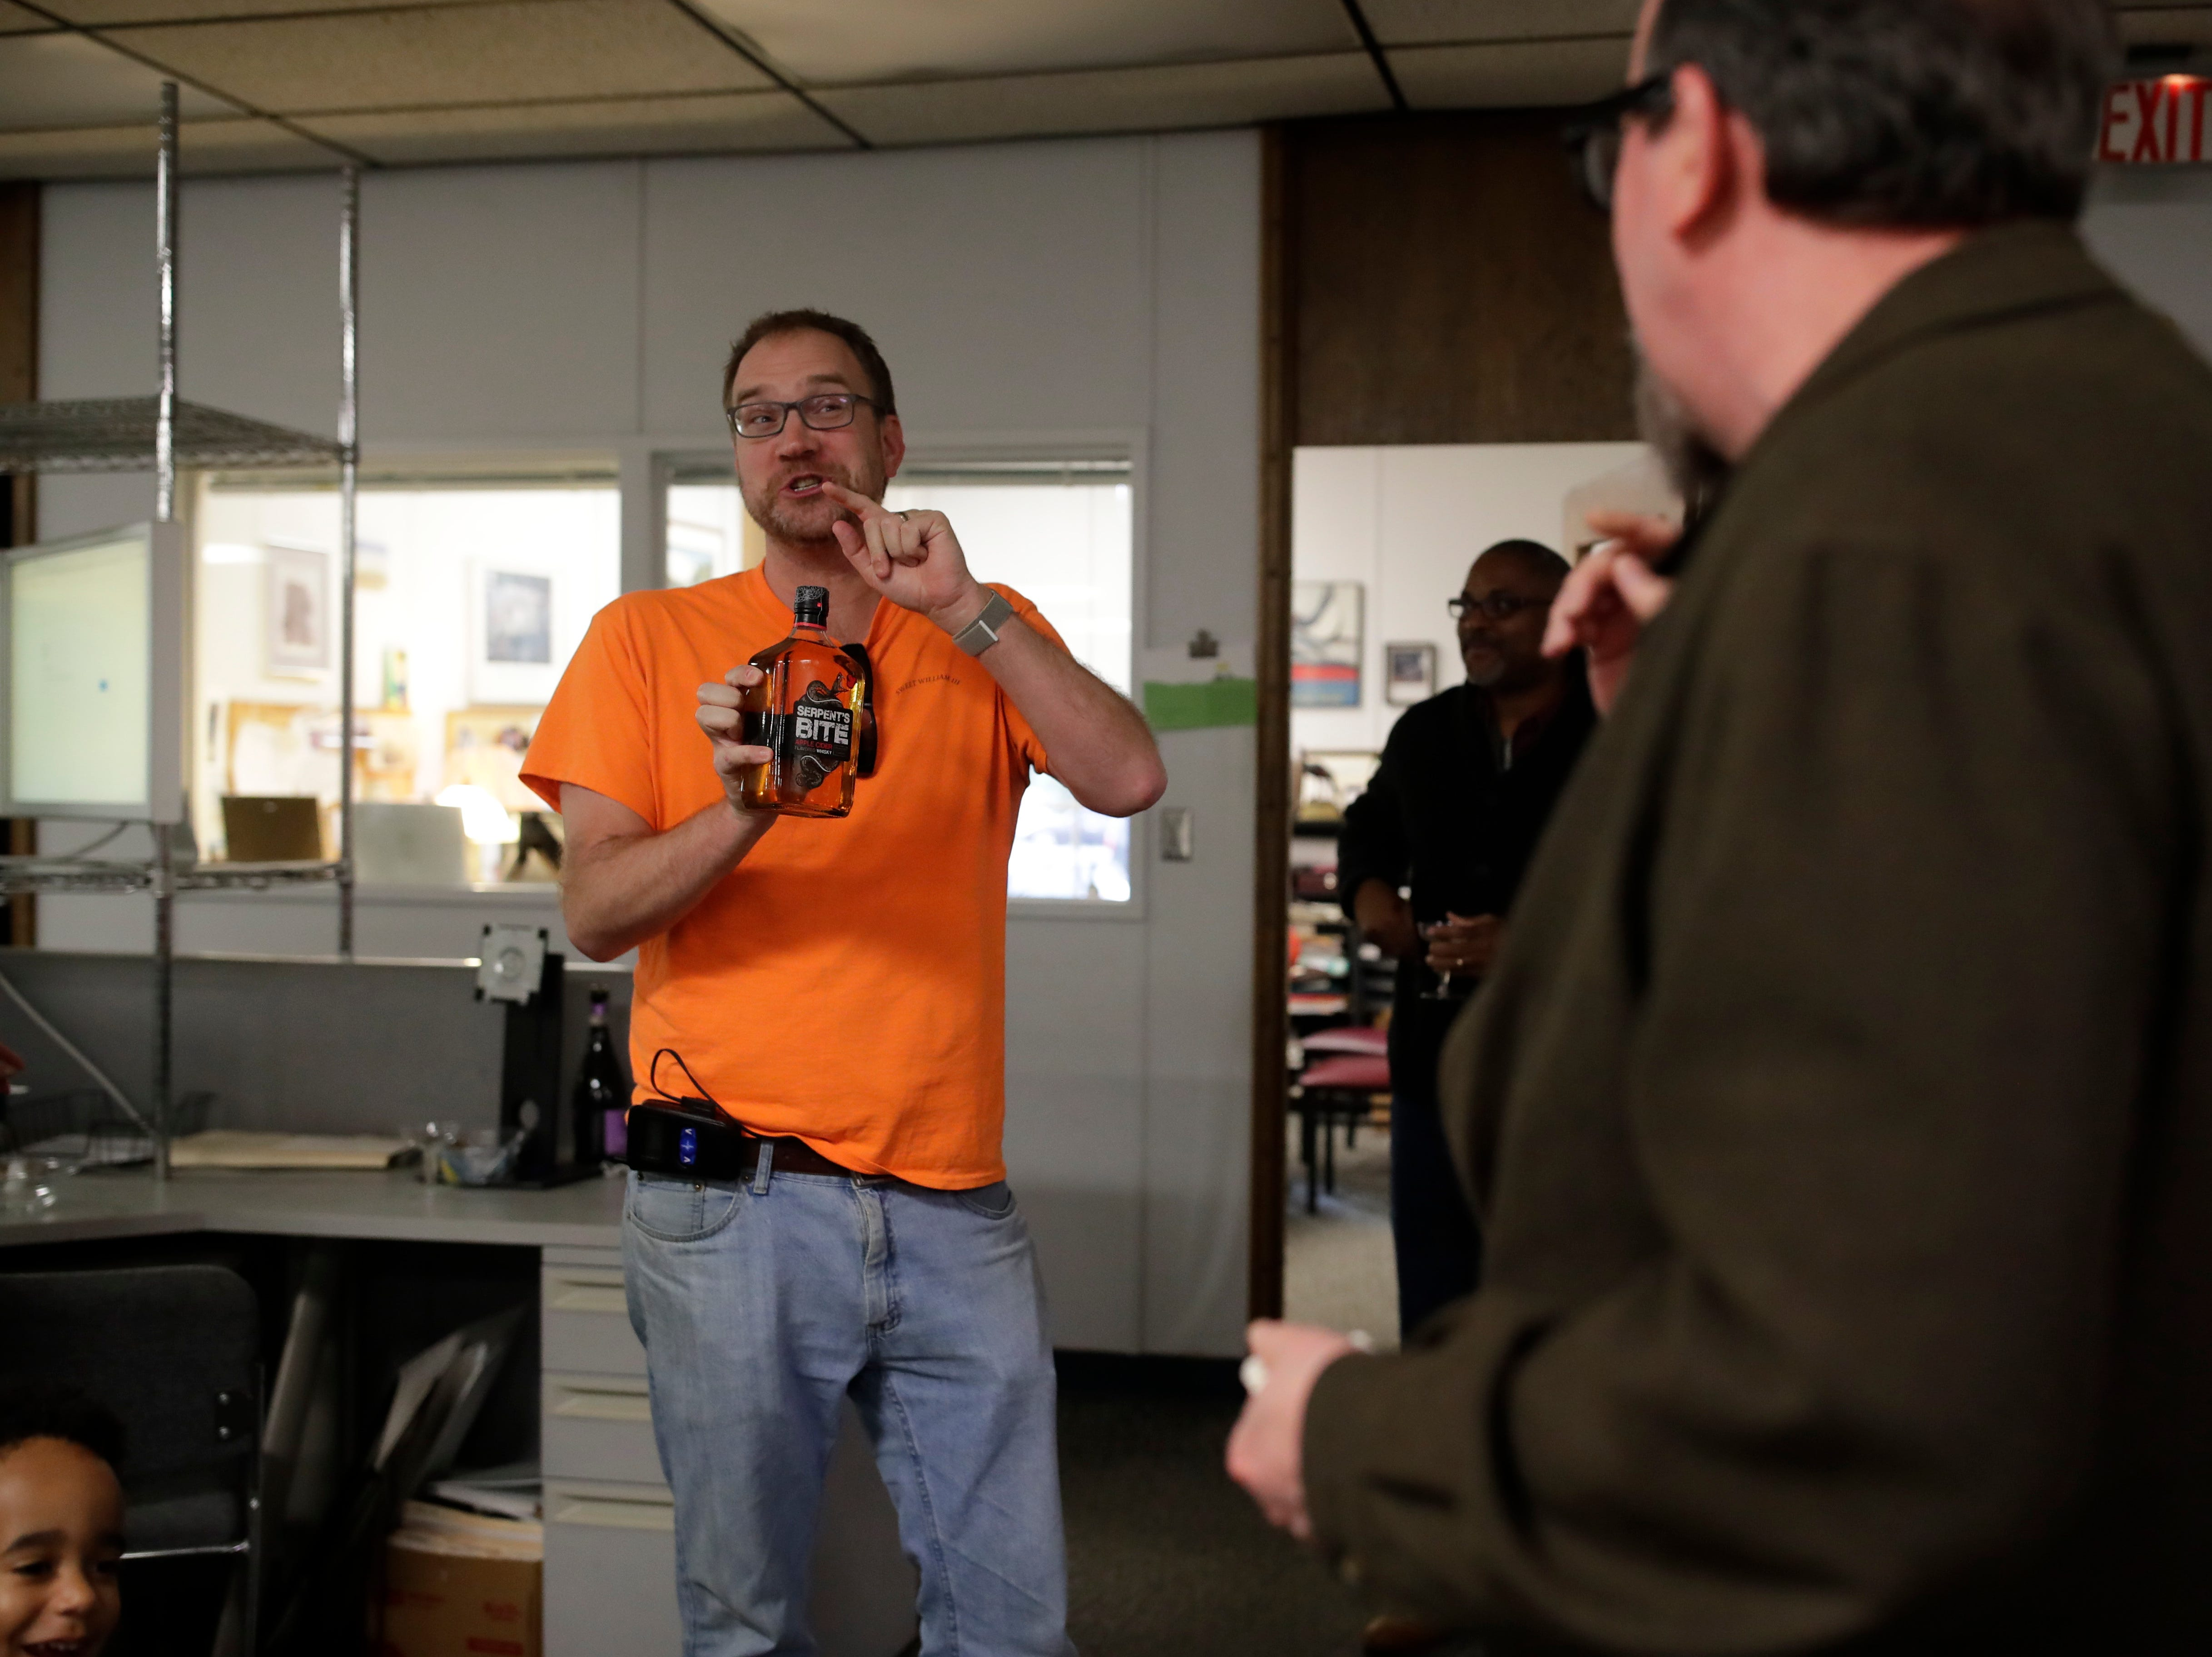 Executive Editor William Hatfield presents Former Arts and Entertainment Editor Mark Hinson with a bottle of whiskey on his last day of work at the Tallahassee Democrat Wednesday, Jan. 2, 2019.